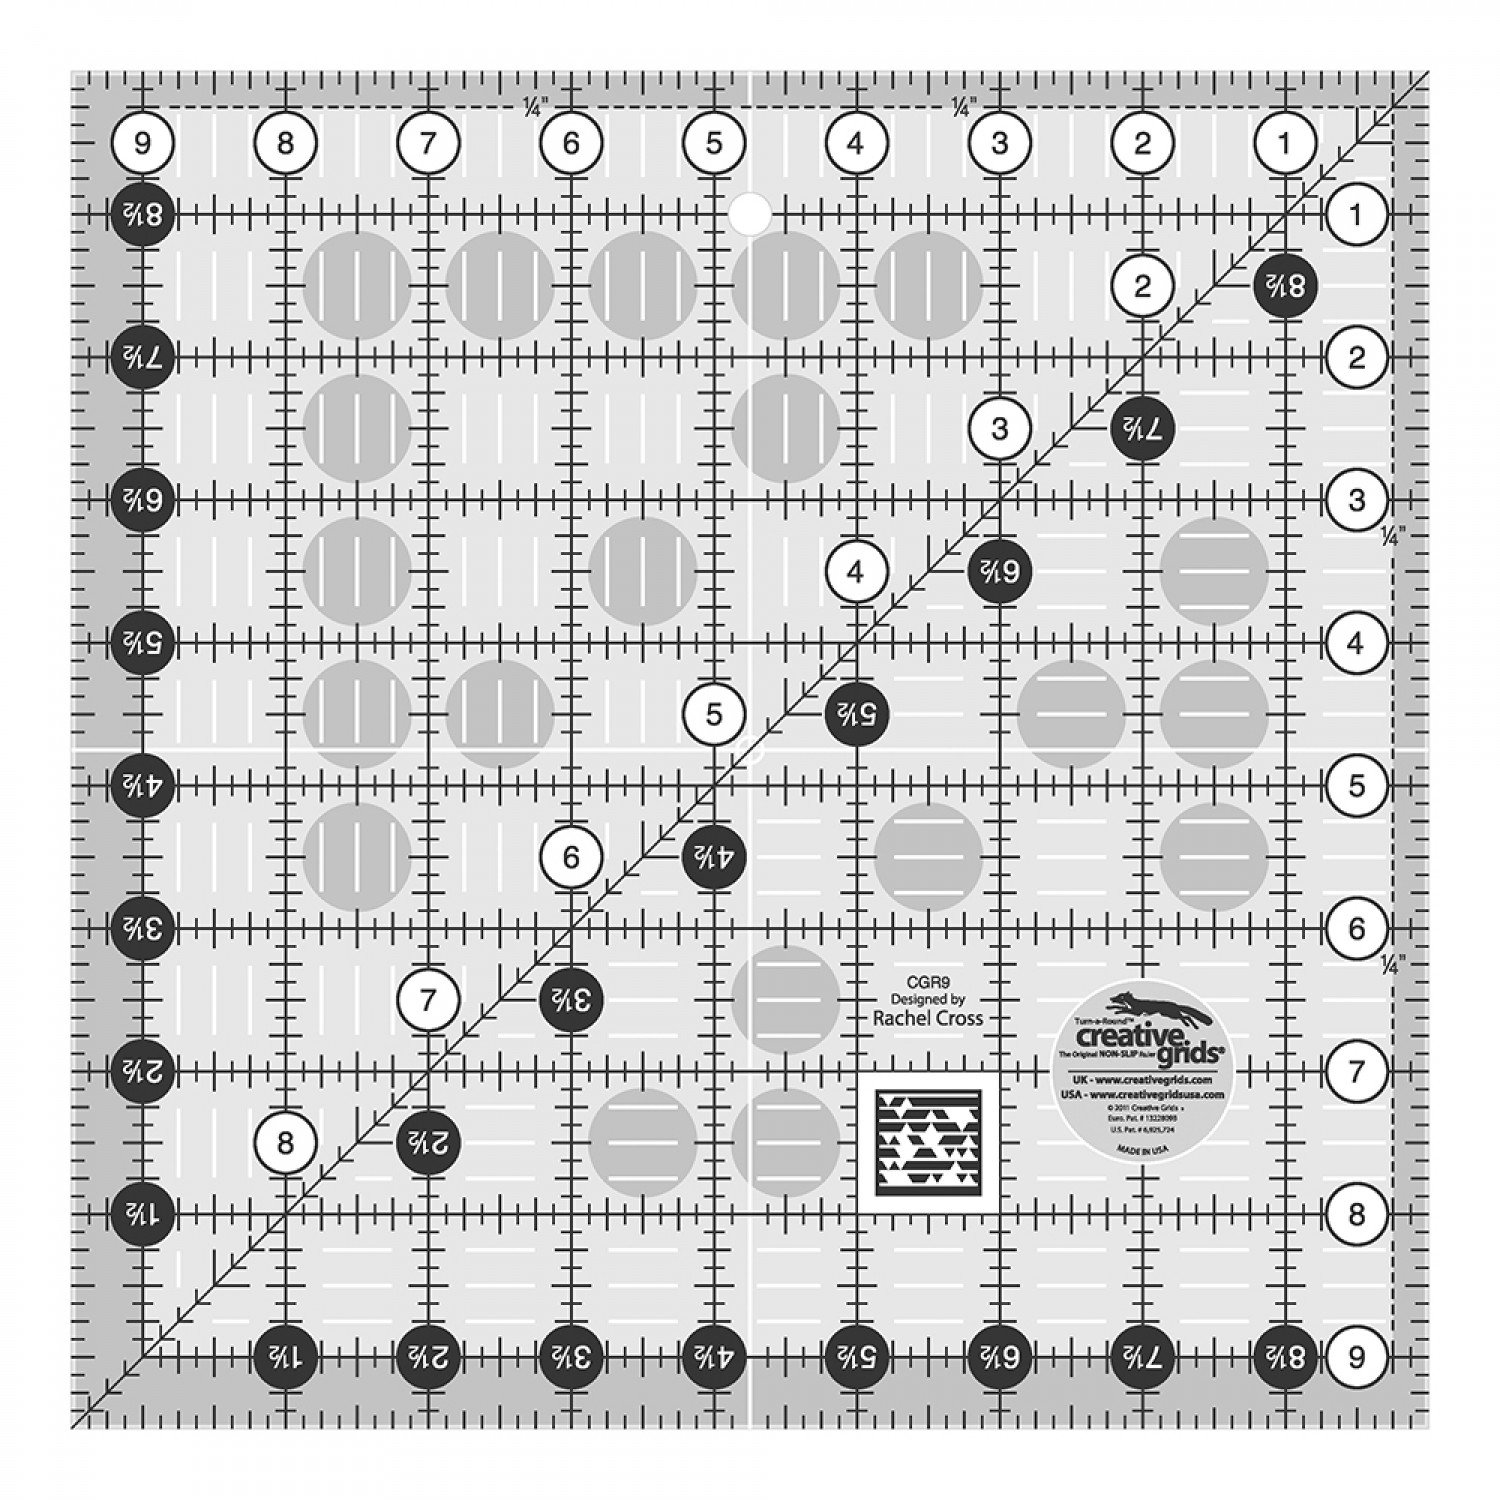 Creative Grids Quilt Ruler 9 1/2 square